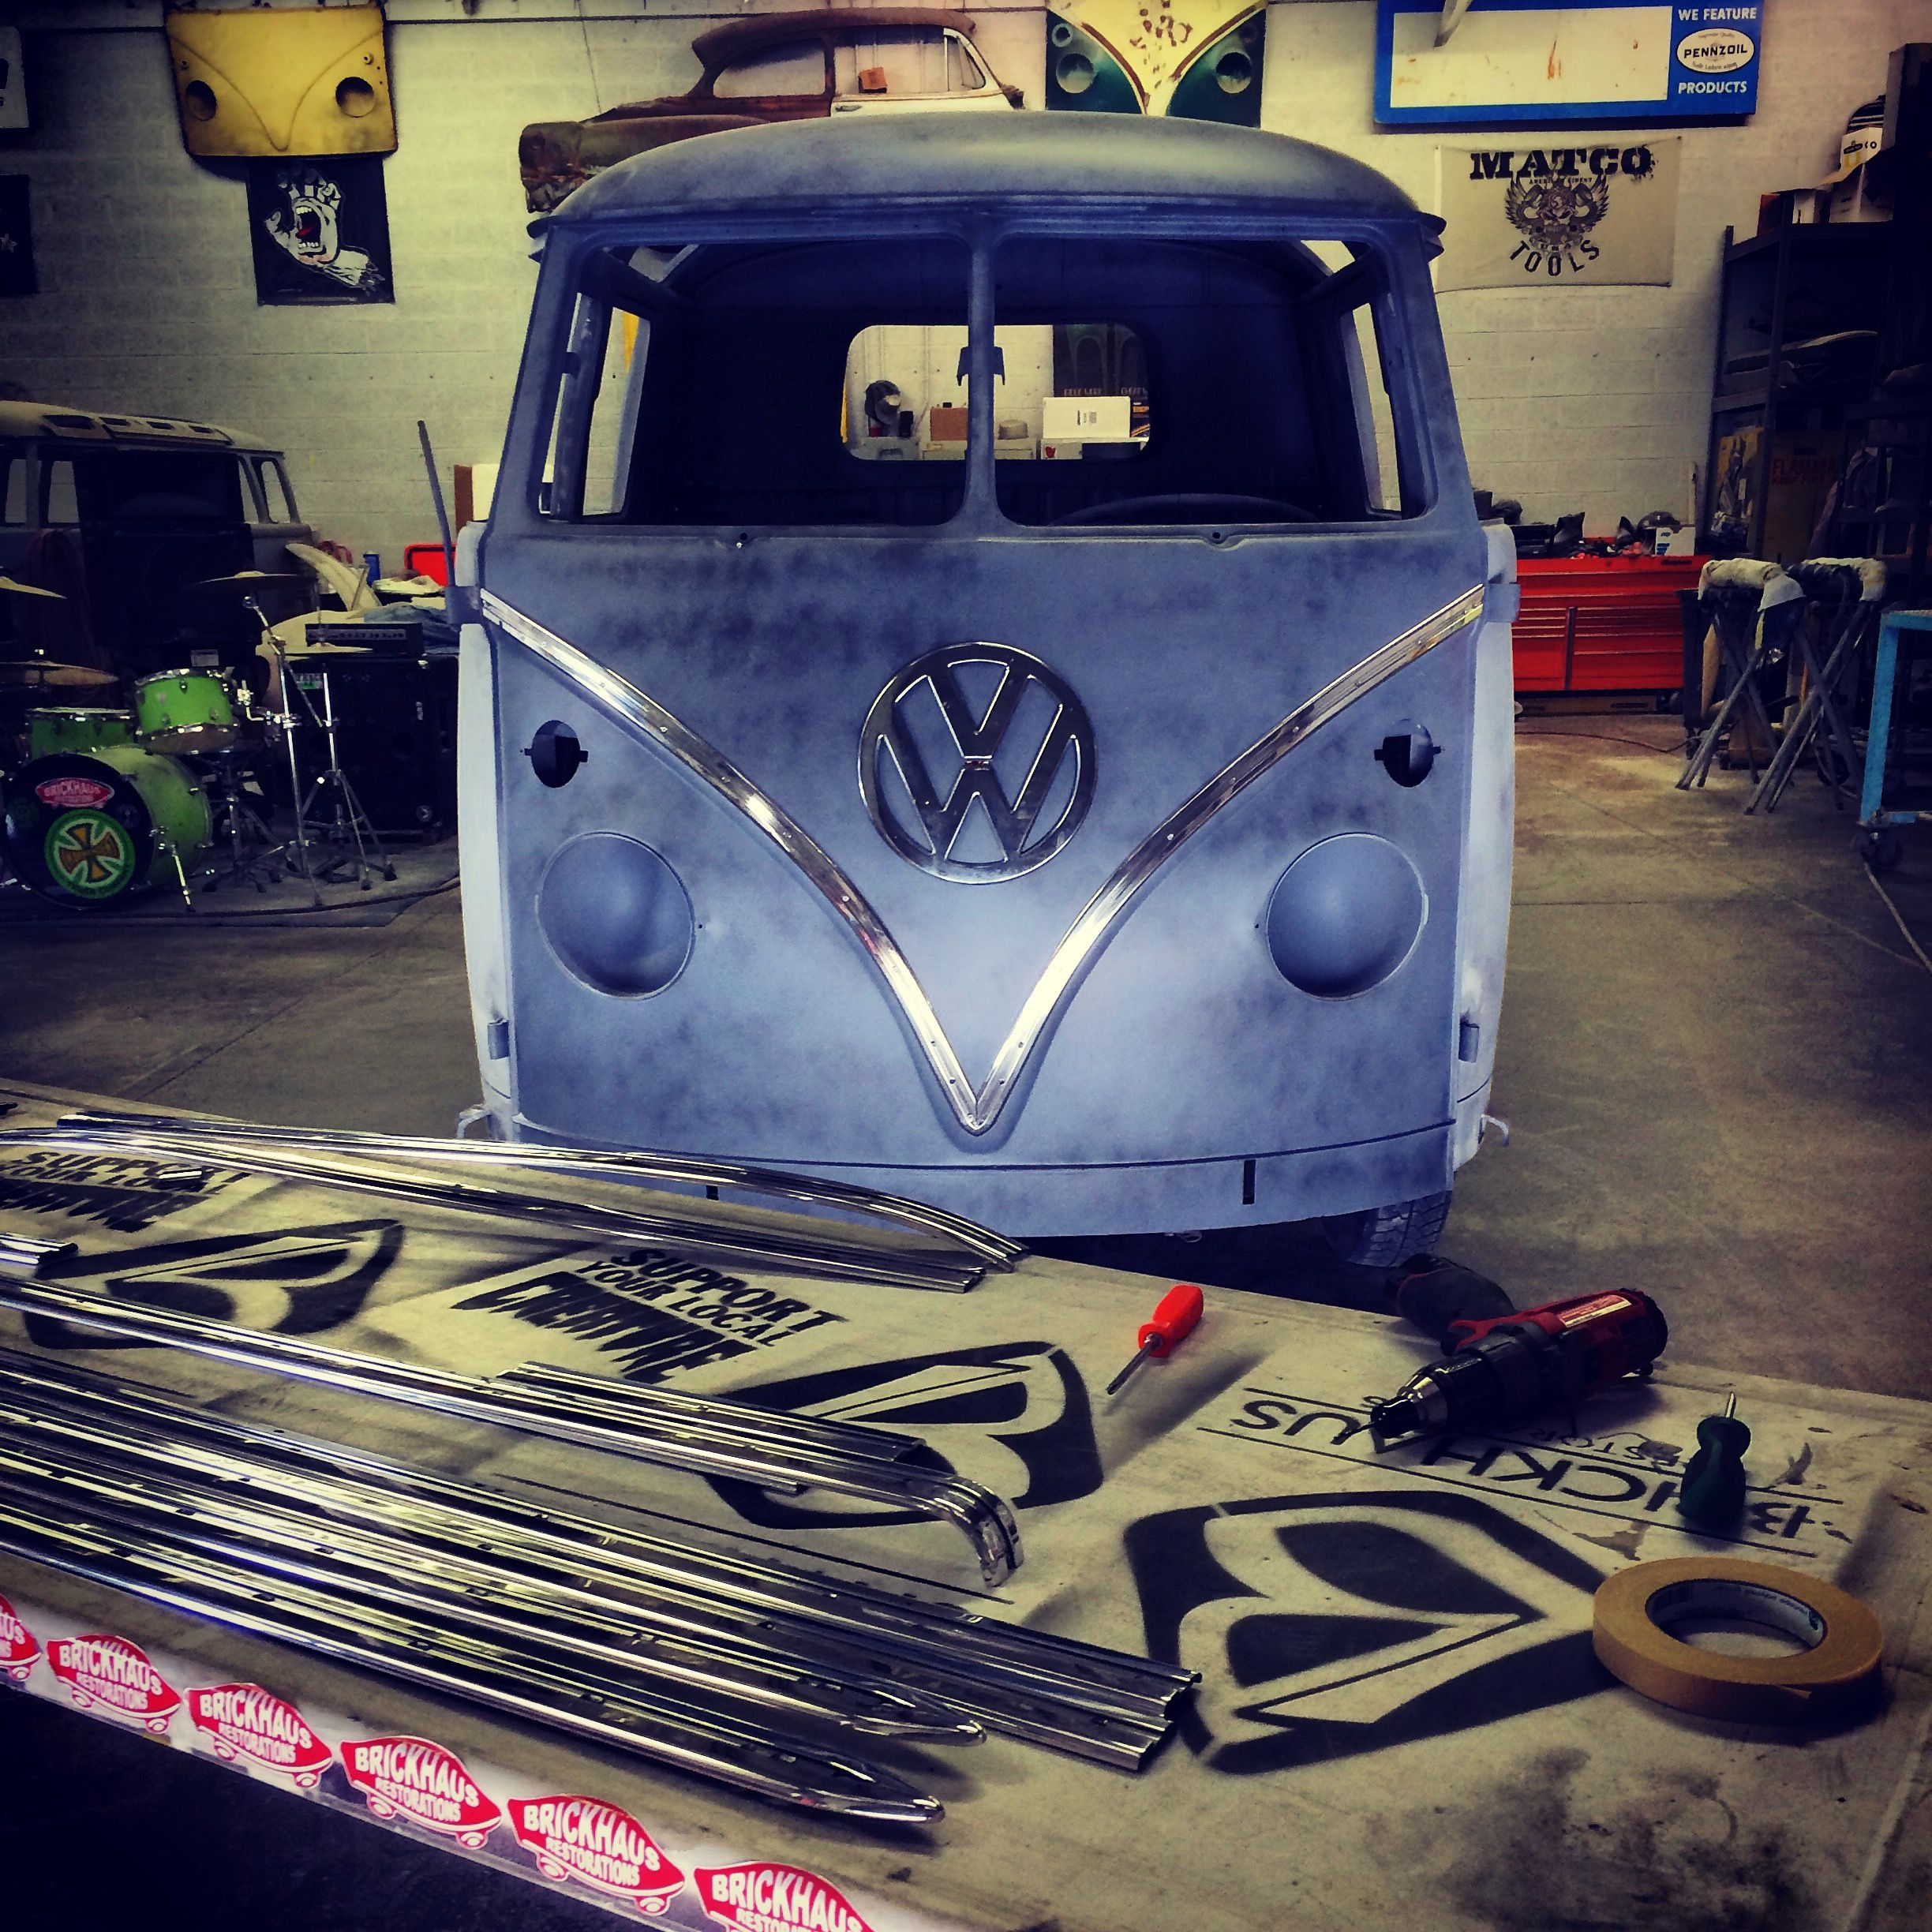 1963 Vw Double Cab Truck With Deluxe Trim Vw Split Window Bus